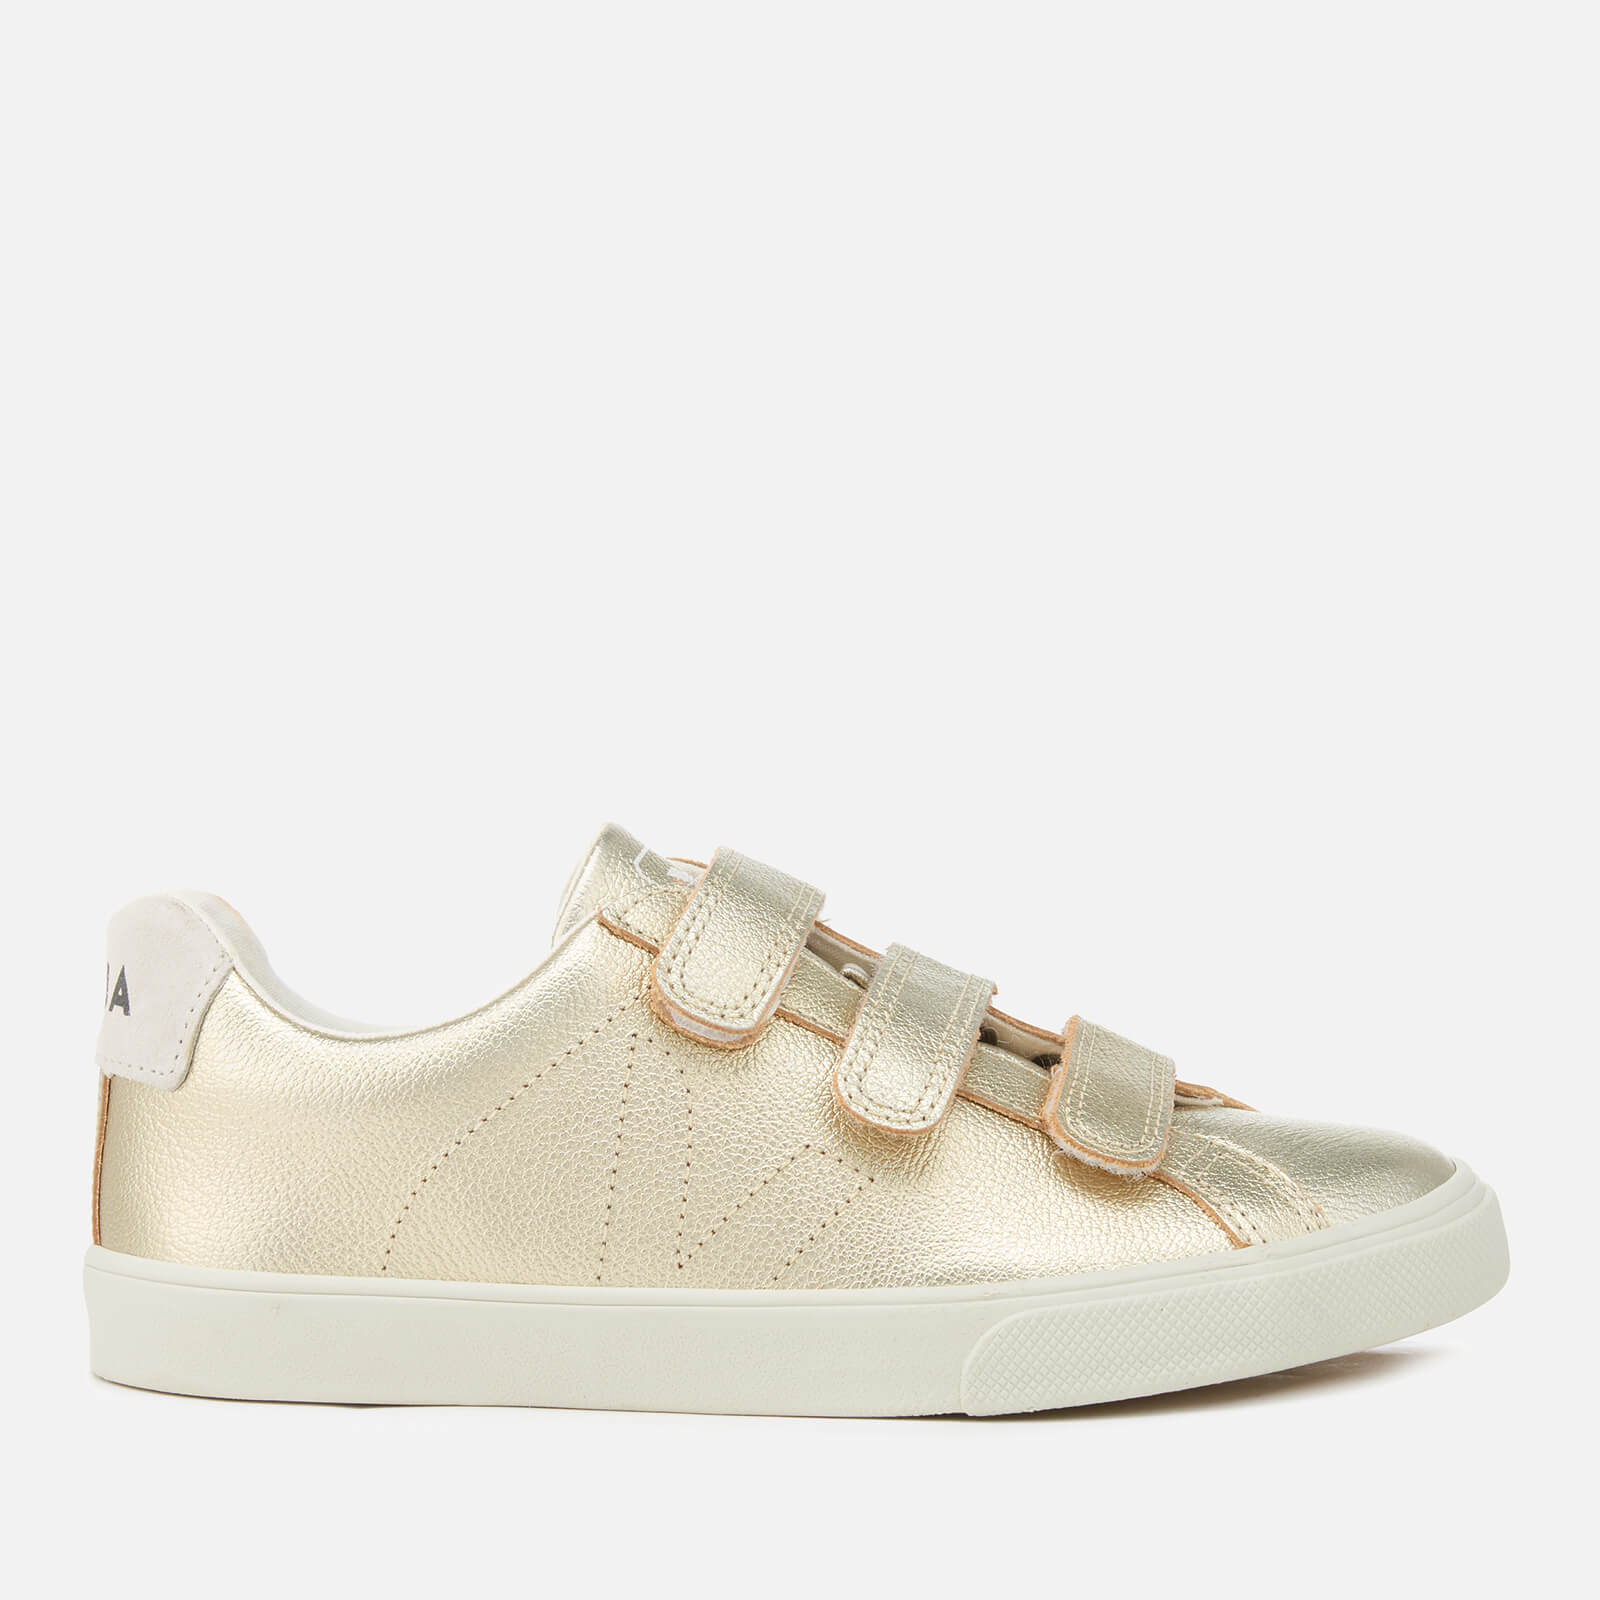 Veja Women's 3 Lock Leather Trainers